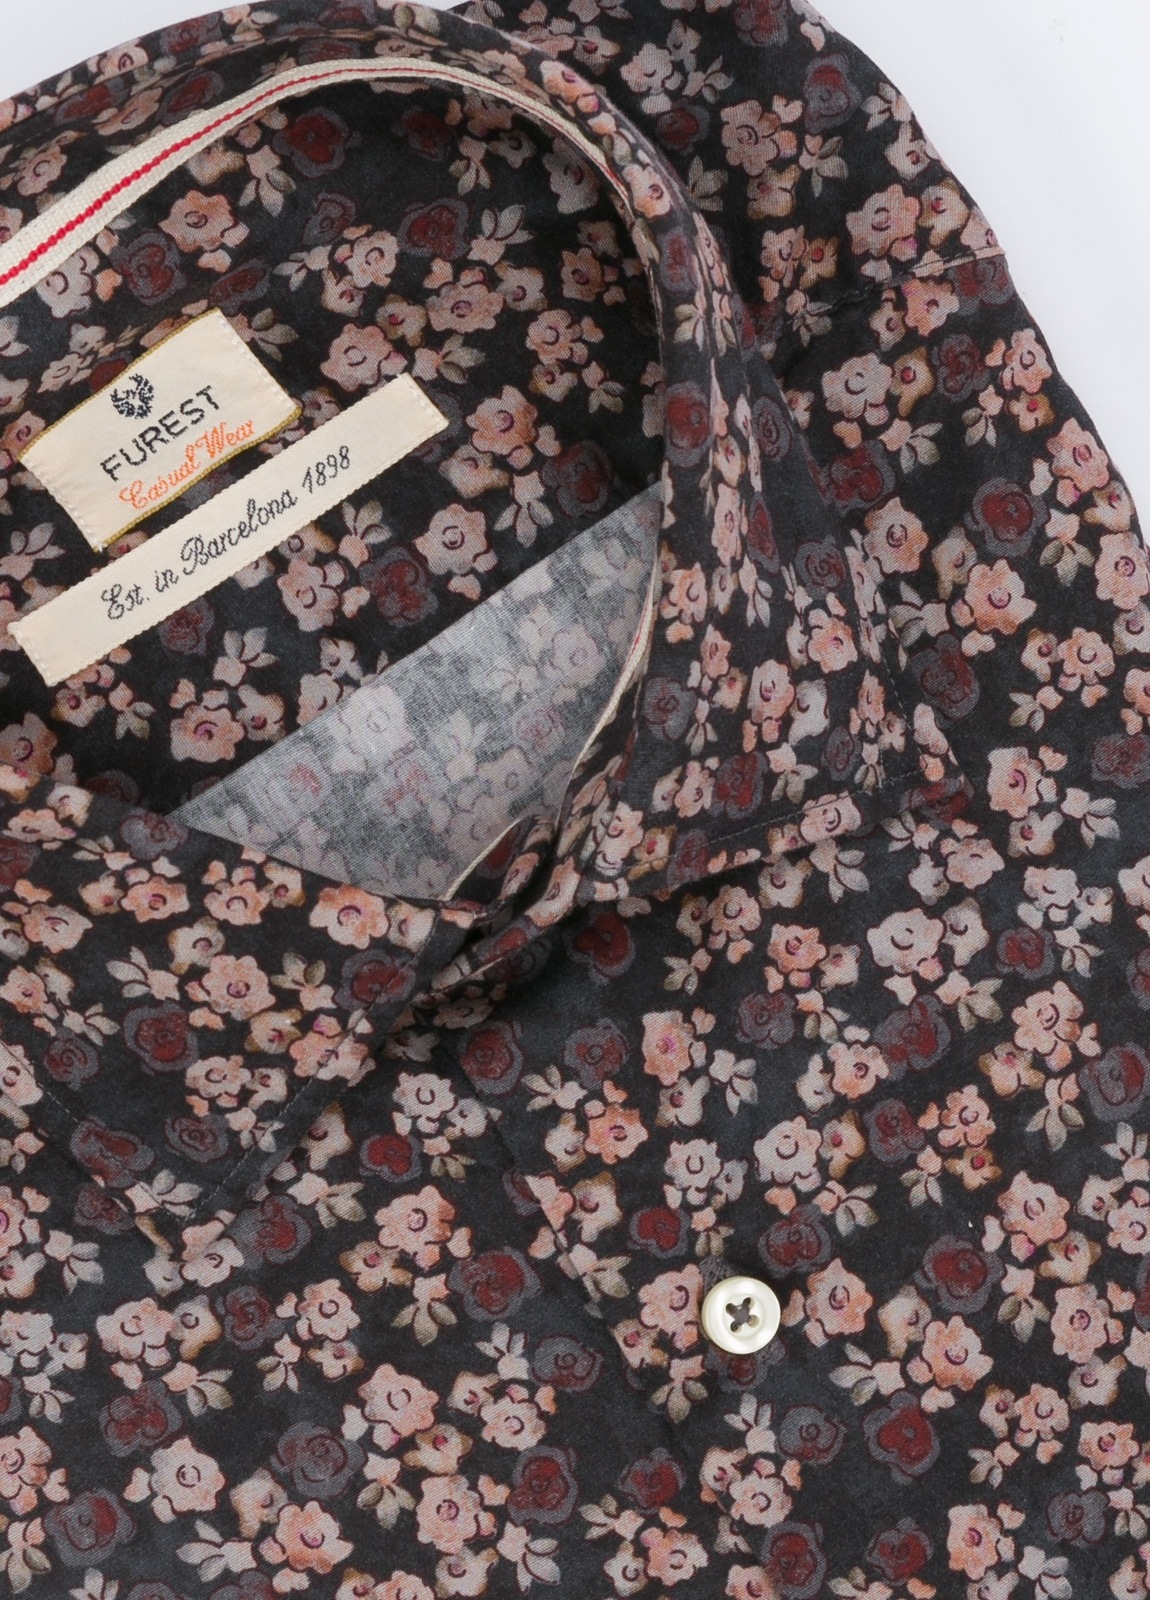 Camisa Leisure Wear SLIM FIT , modelo PORTO estampado floral color granate . 100% Algodón. - Ítem1